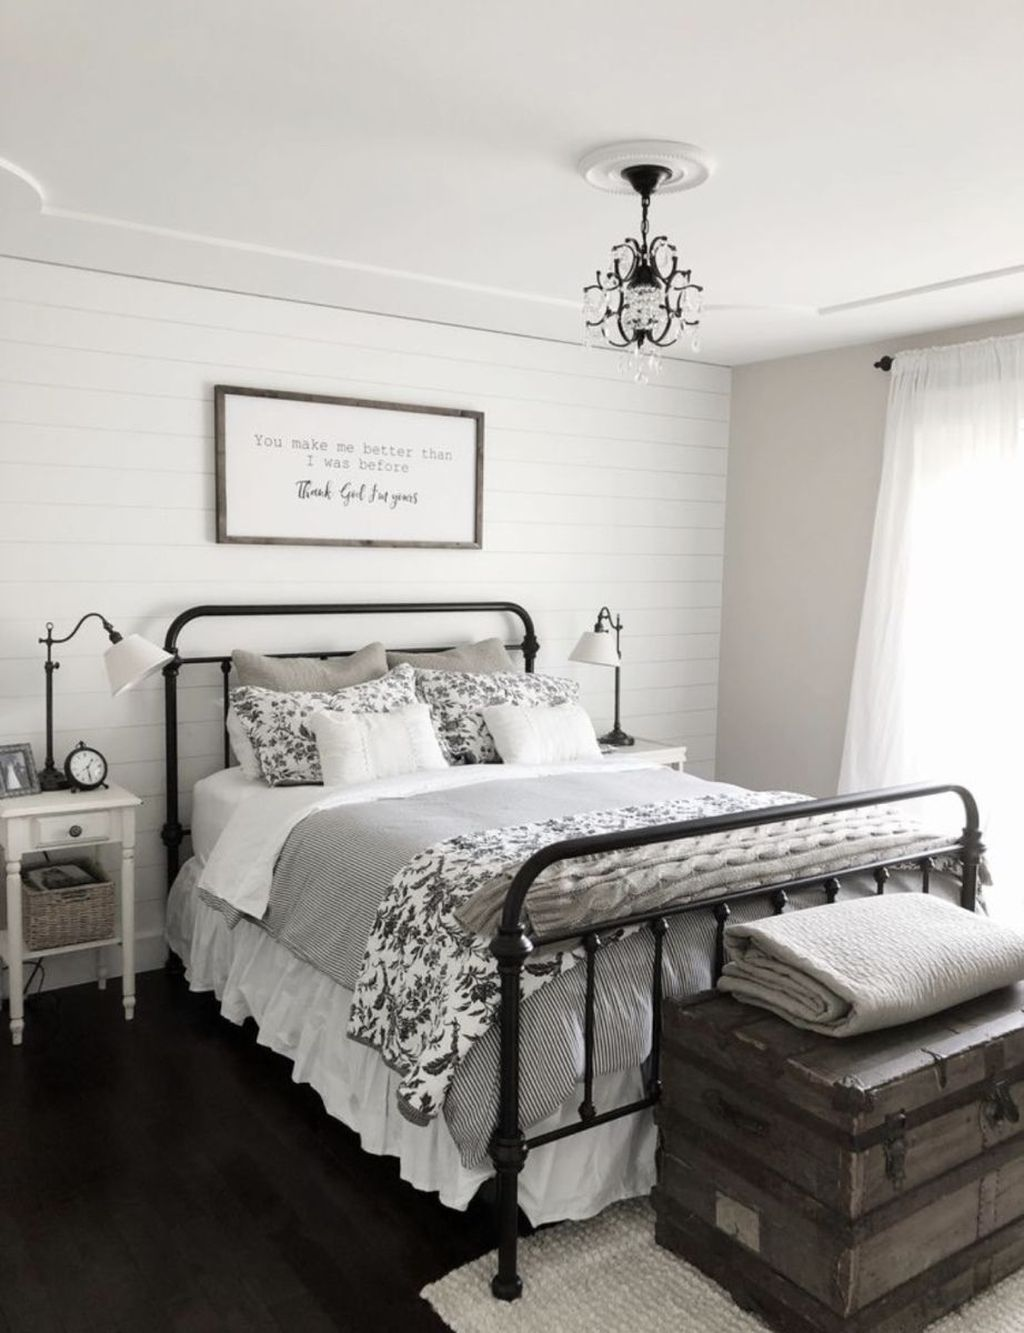 20 Cute Modern Farmhouse Bedroom Remodel Ideas Remodeling Farmhouse Bedroom Decor Modern Farmhouse Bedroom Home Decor Bedroom